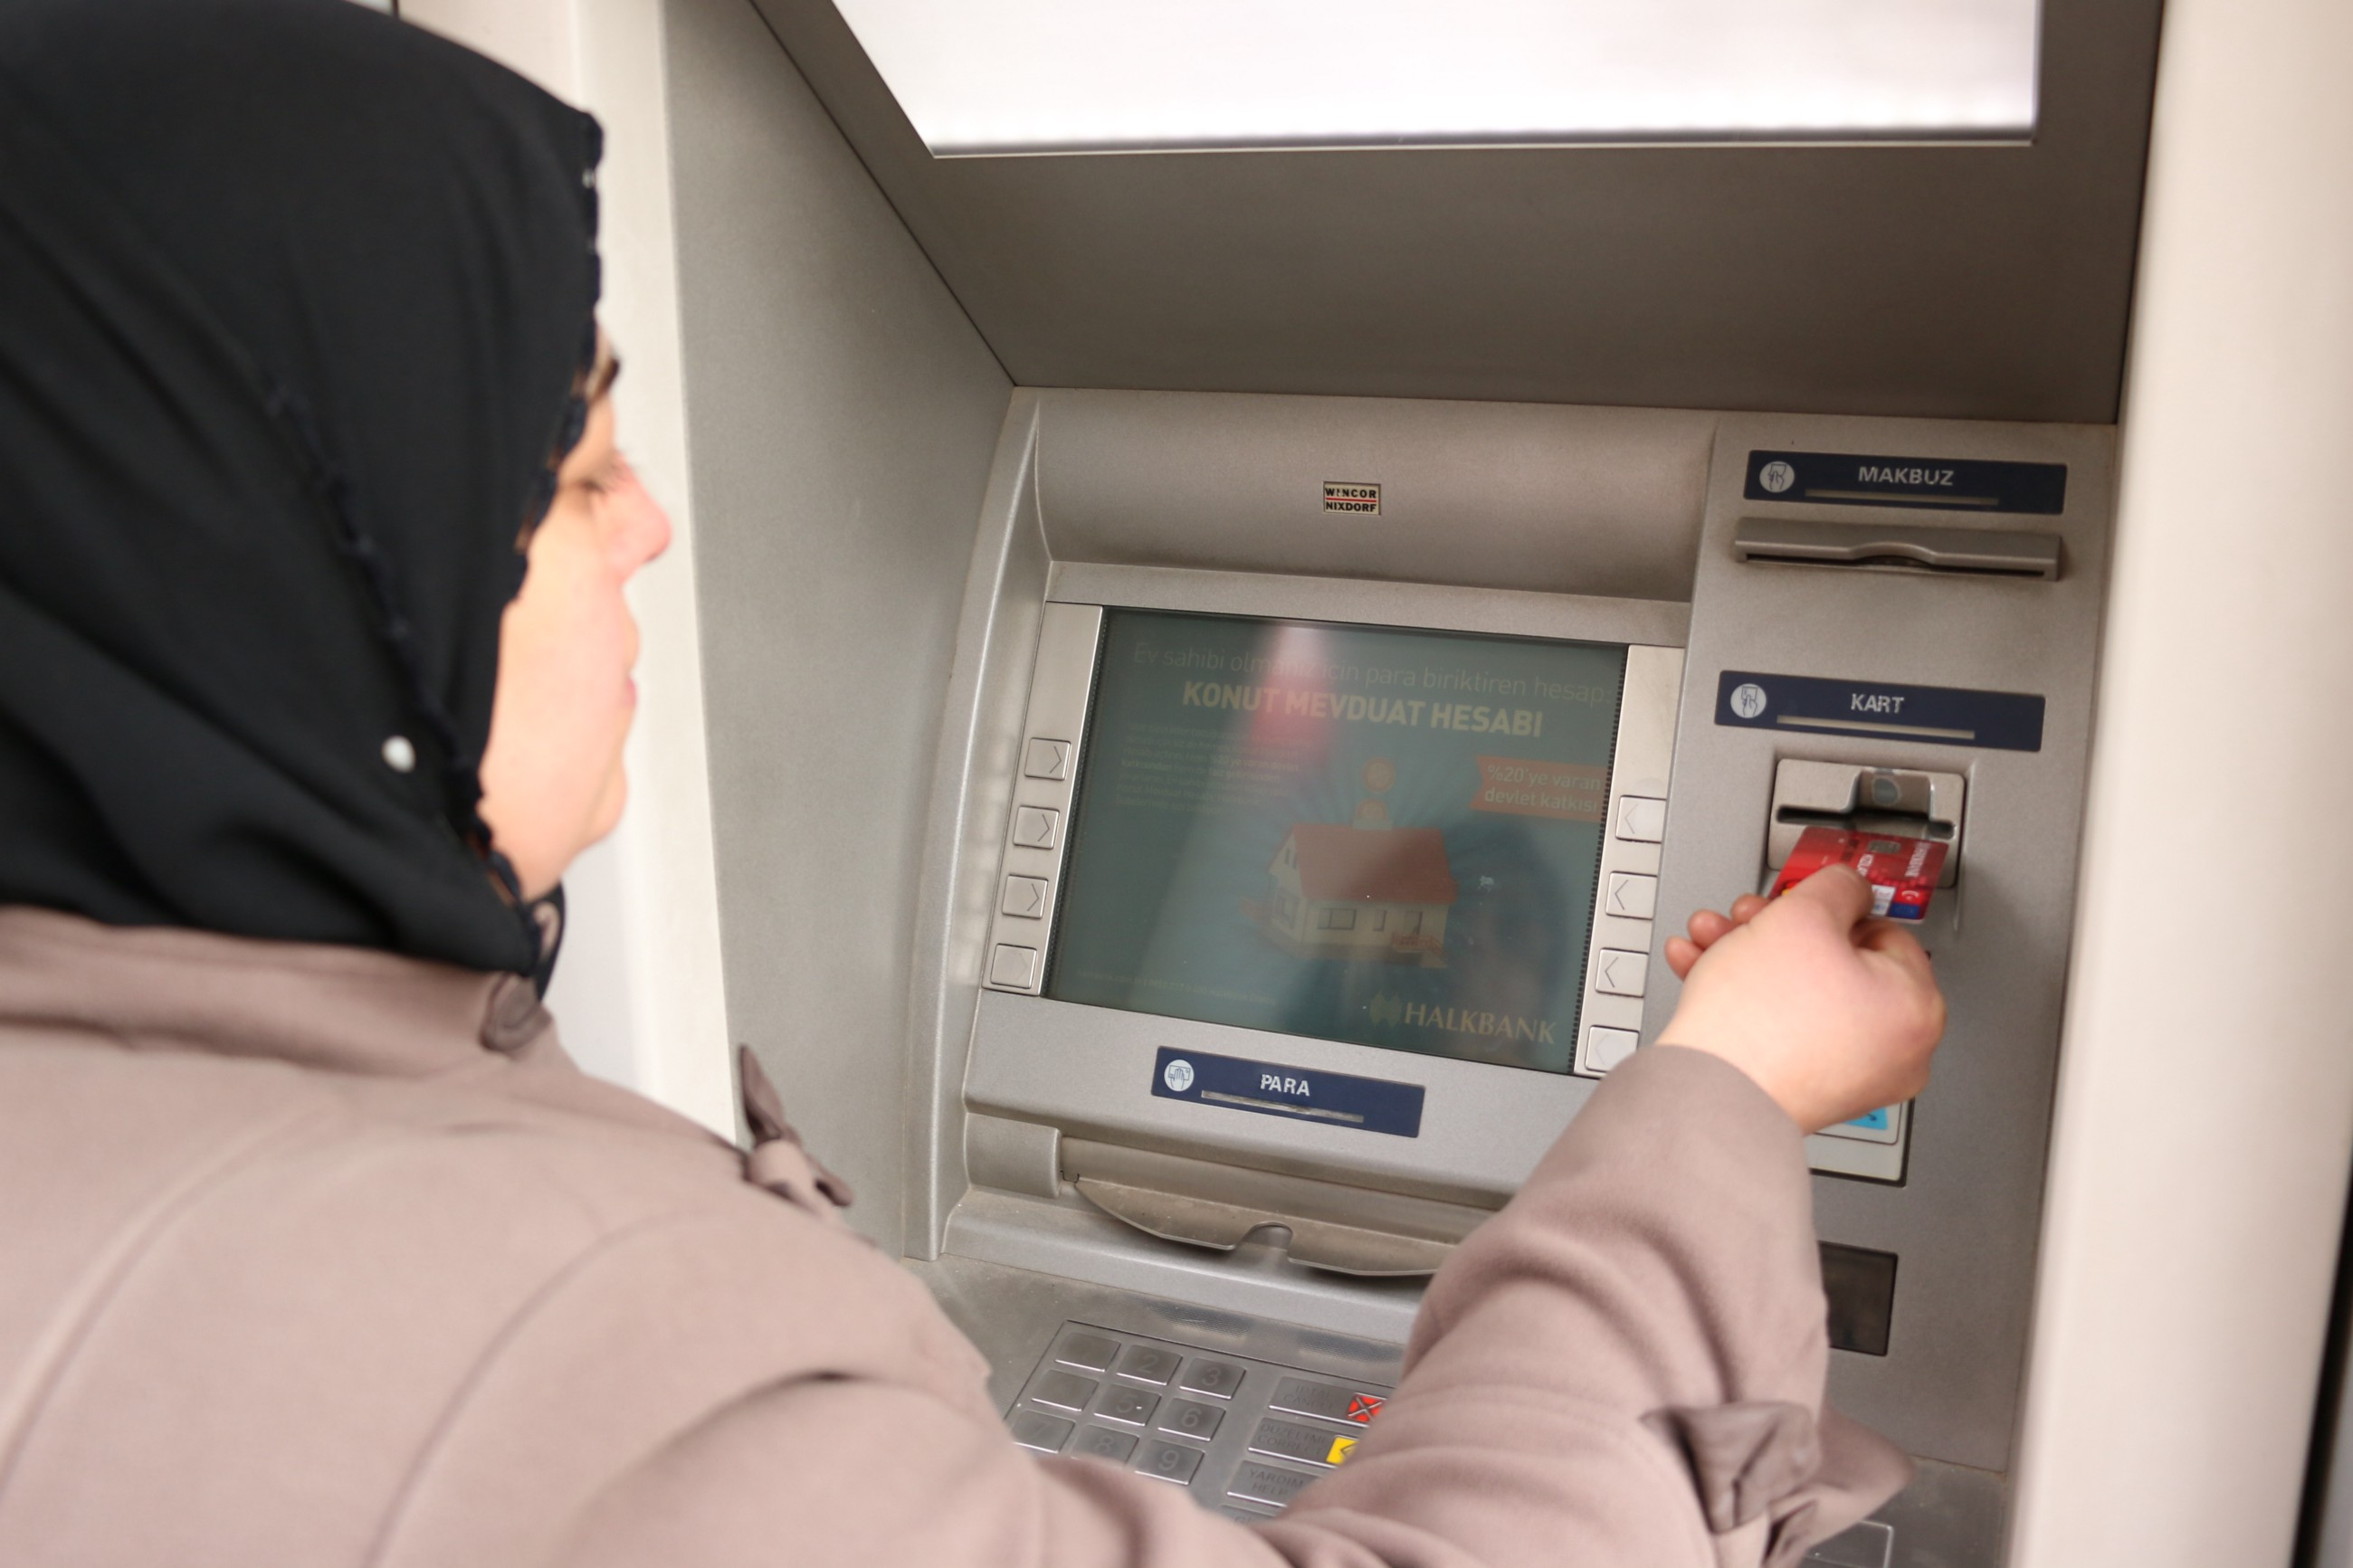 syria kart 2020 EU funded Cash Card has Big Impact on Syrian Refugees in Turkey